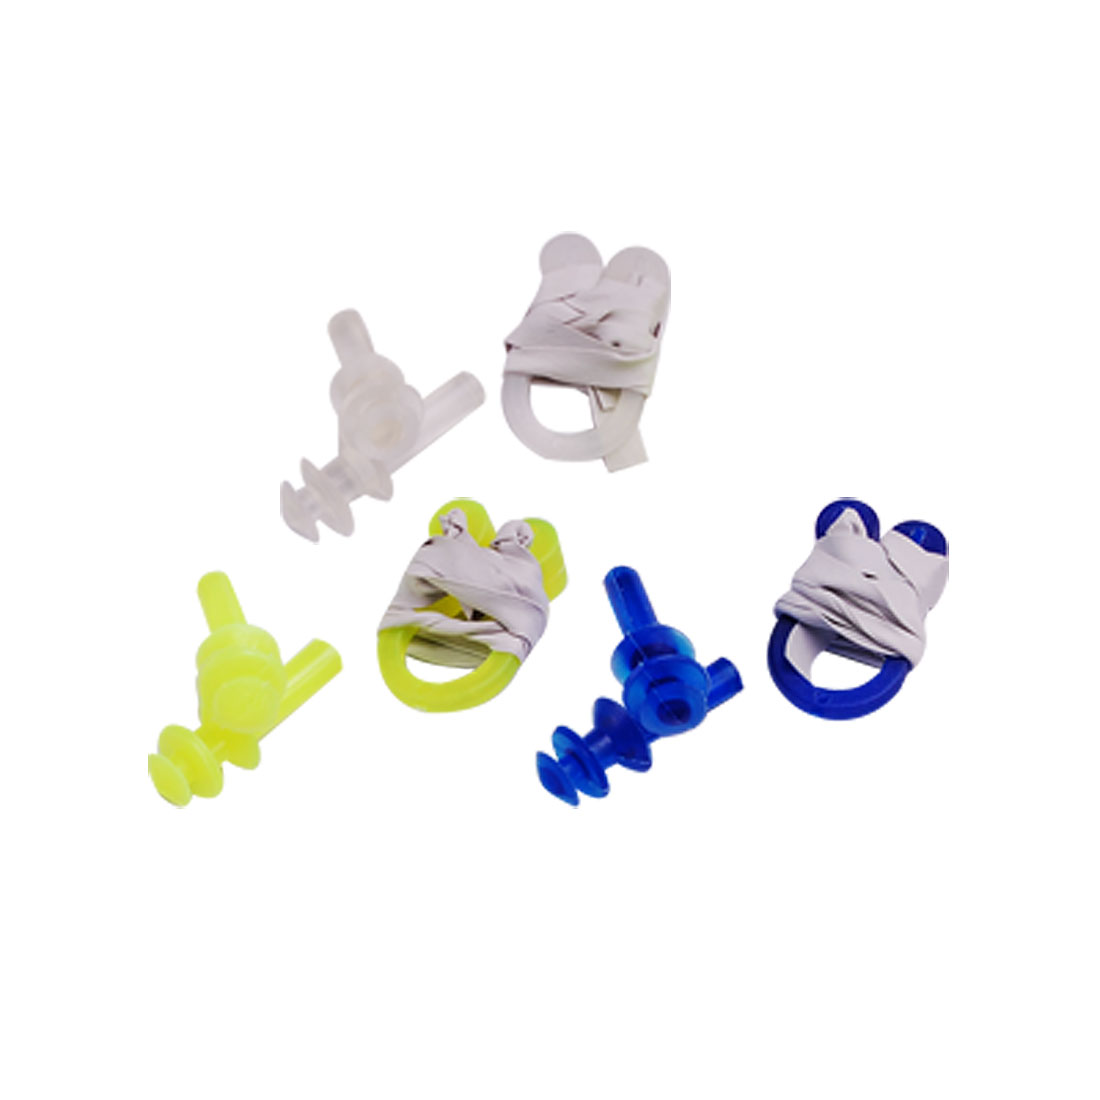 12 Pcs Plastic Nose Clip + Ear plug Set for Swimming